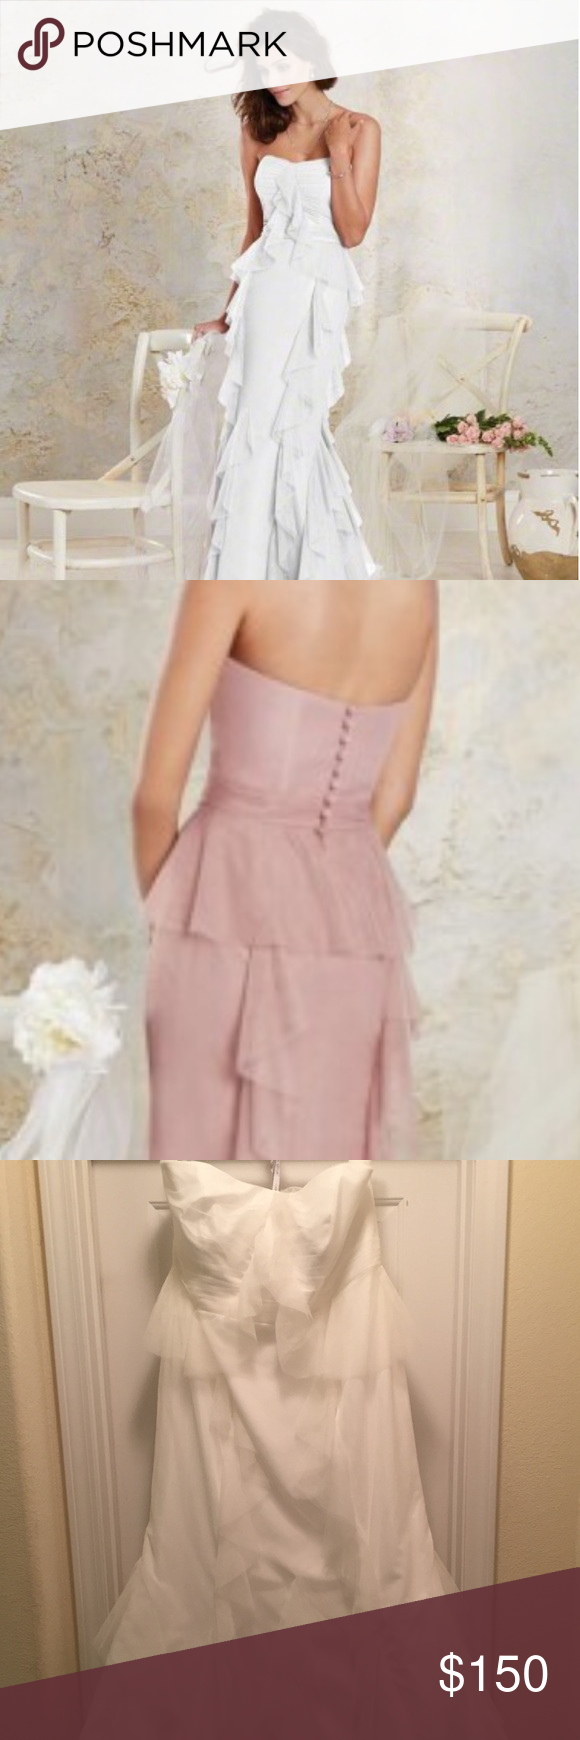 Perfect Gown Length Garment Bag Pictures - Wedding and flowers ...